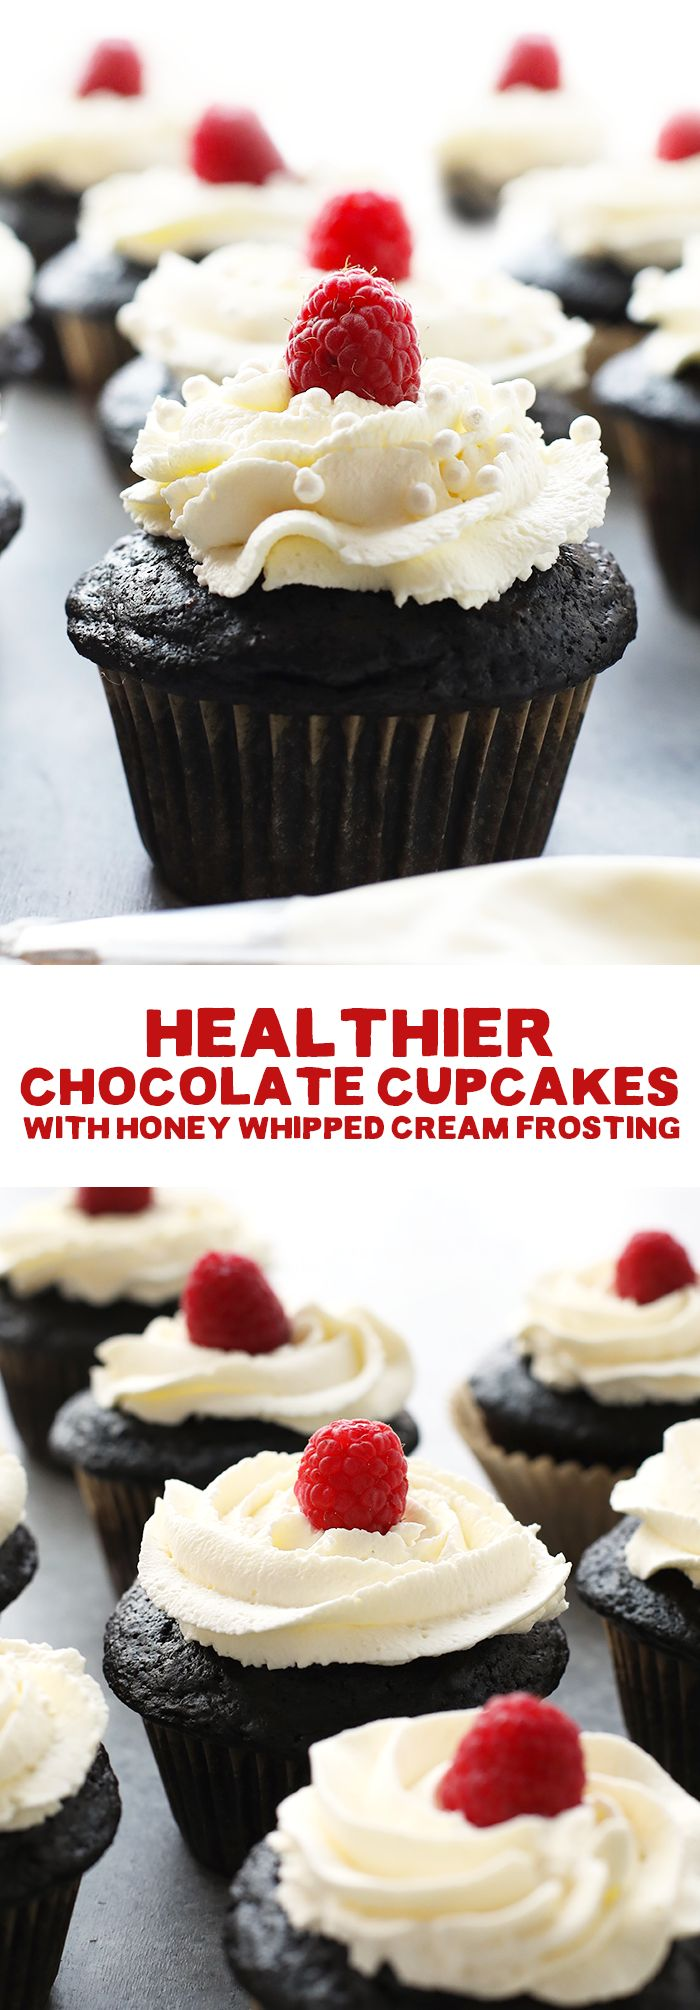 This healthier chocolate cupcake recipe is lightened up with white whole wheat flour, Greek yogurt, and coconut sugar for the perfect, not-too-sweet dessert!